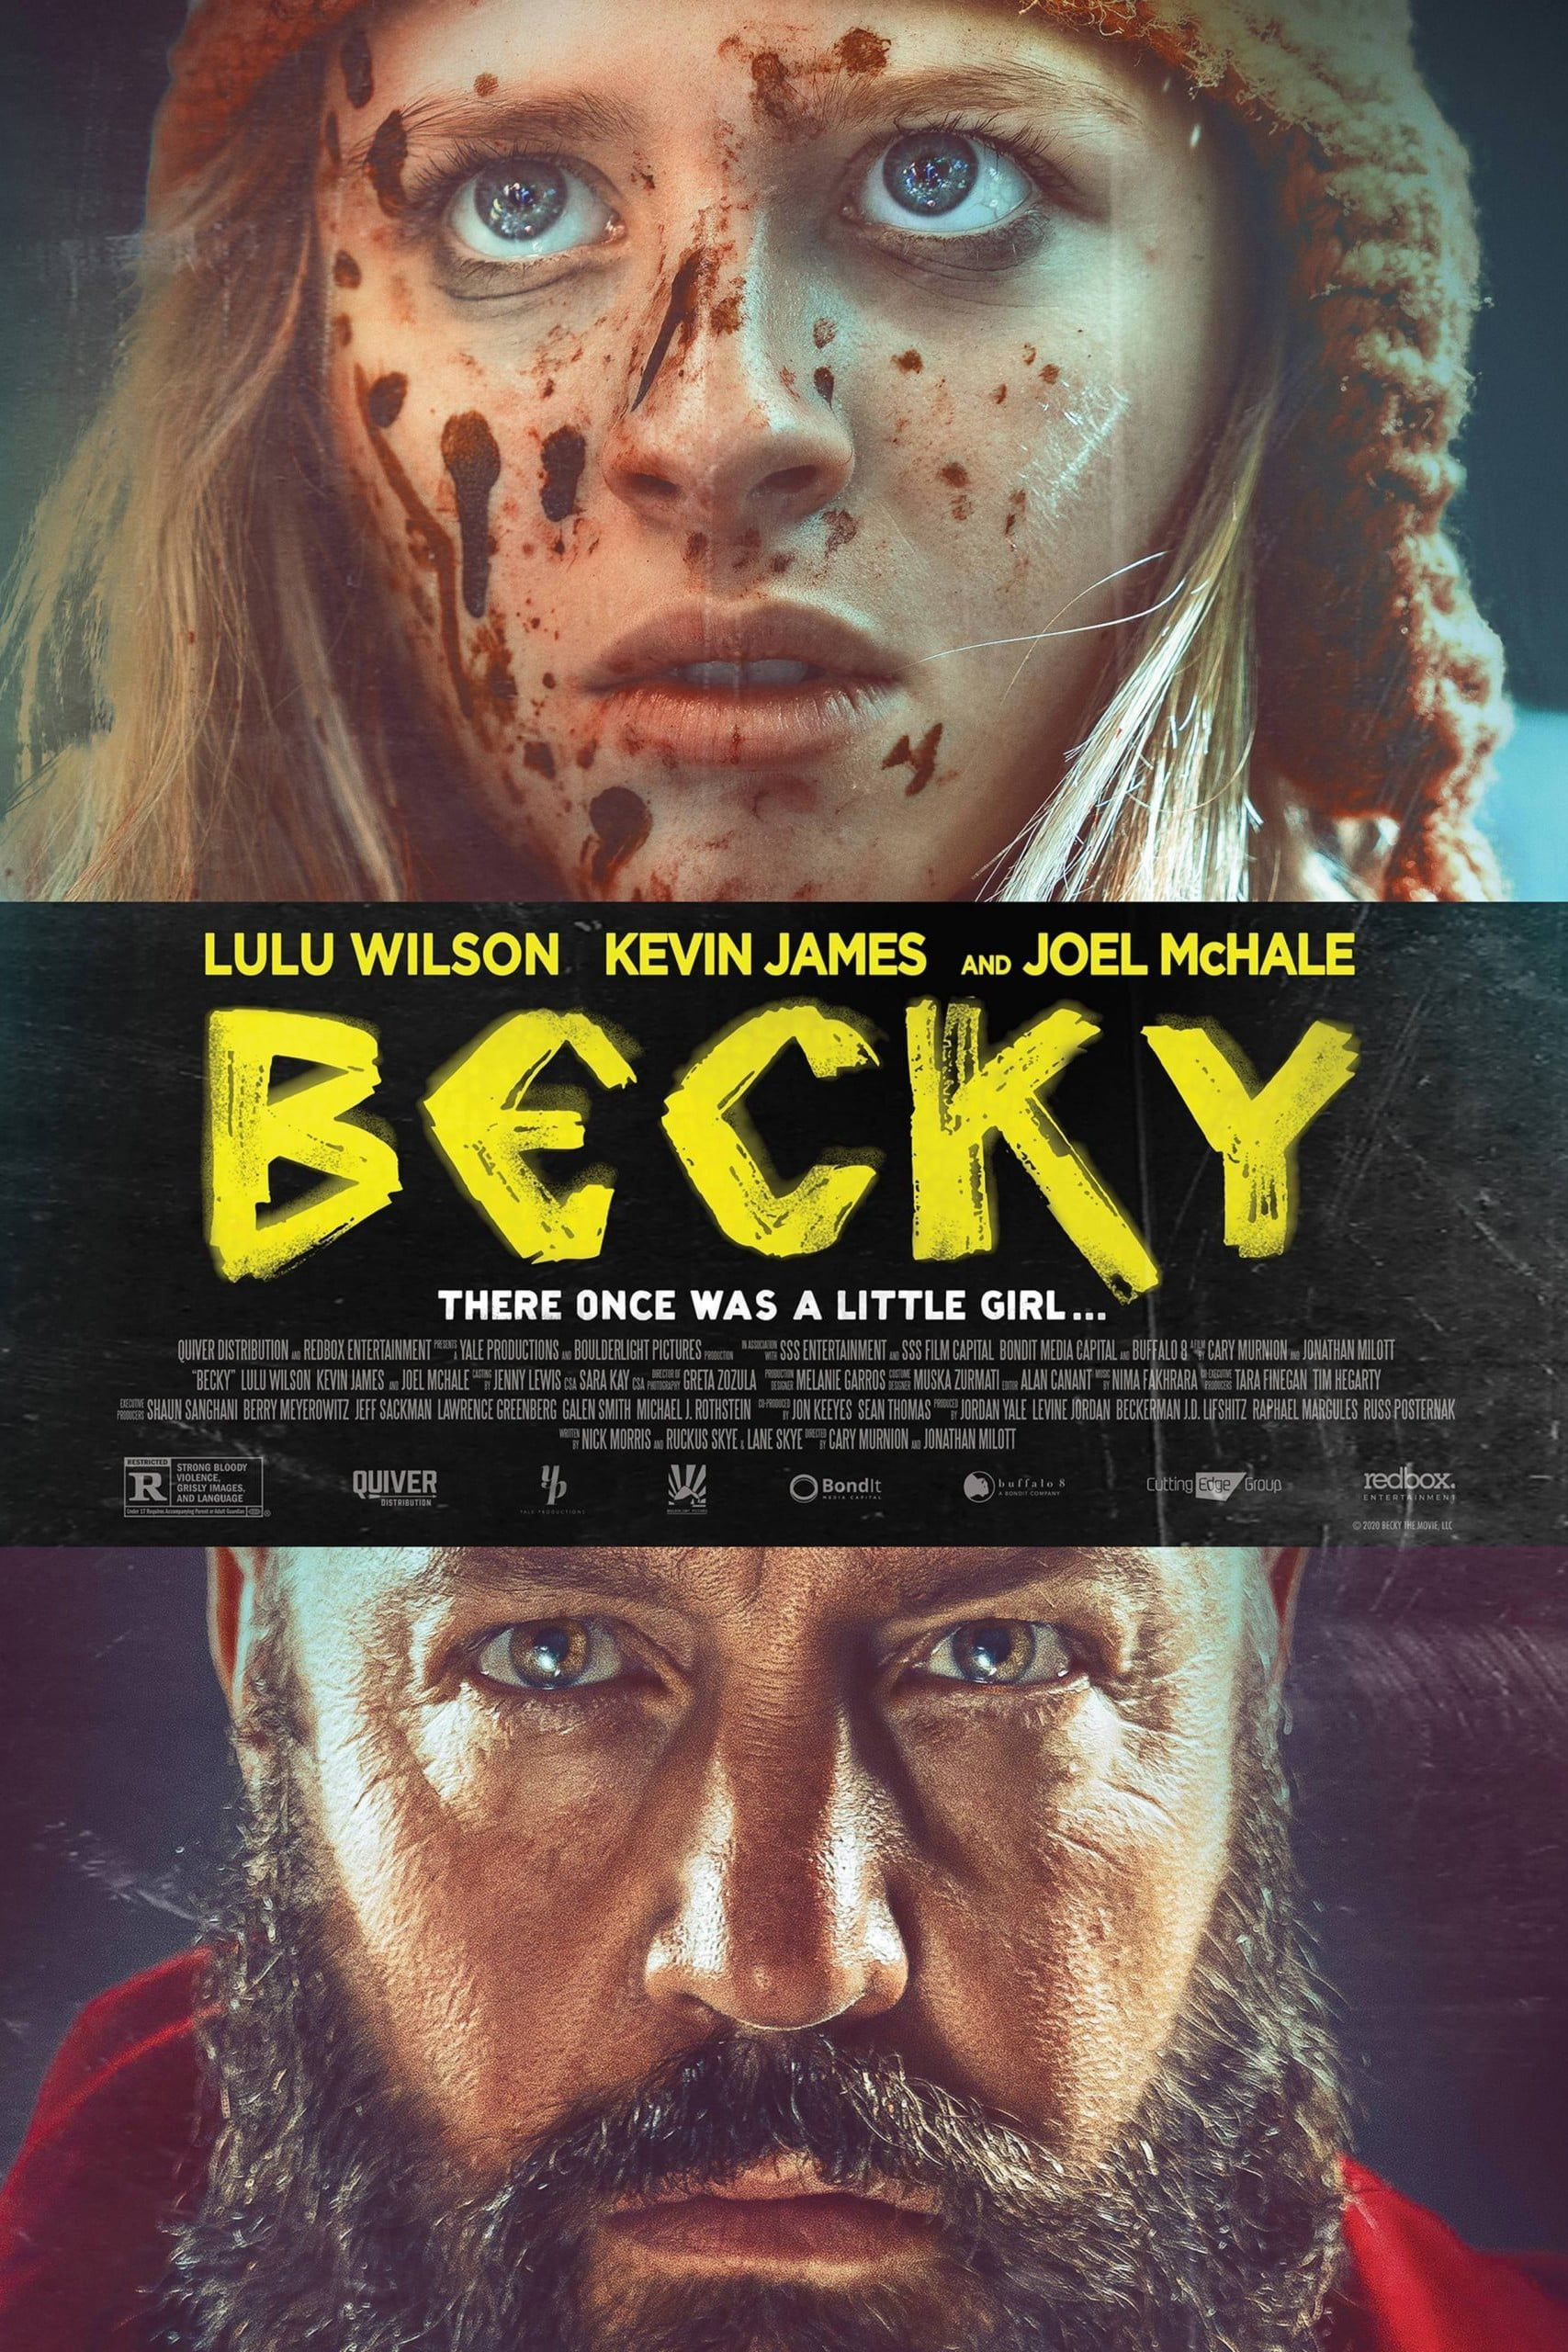 Voir Film Becky - Film (2020) streaming VF gratuit complet